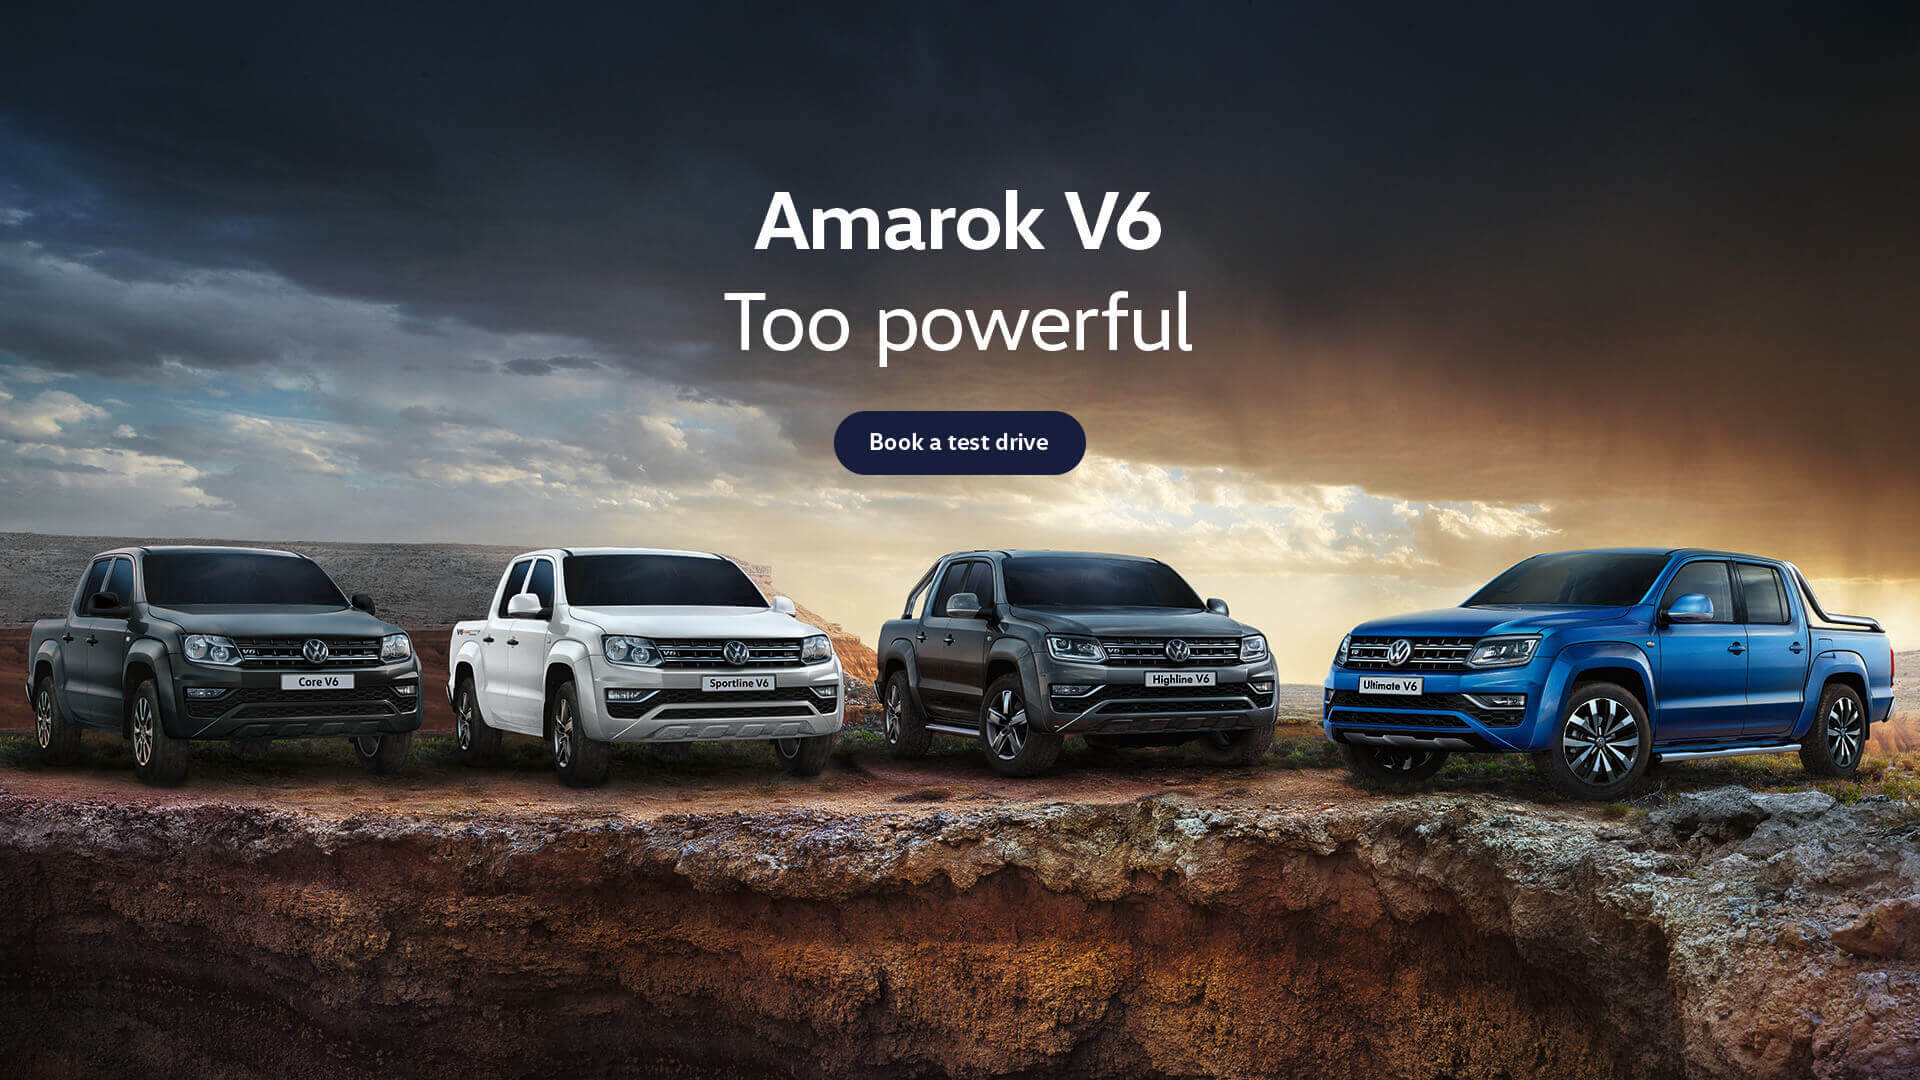 Amarok V6. Too powerful. Test drive today at Westpoint Volkswagen, Brisbane